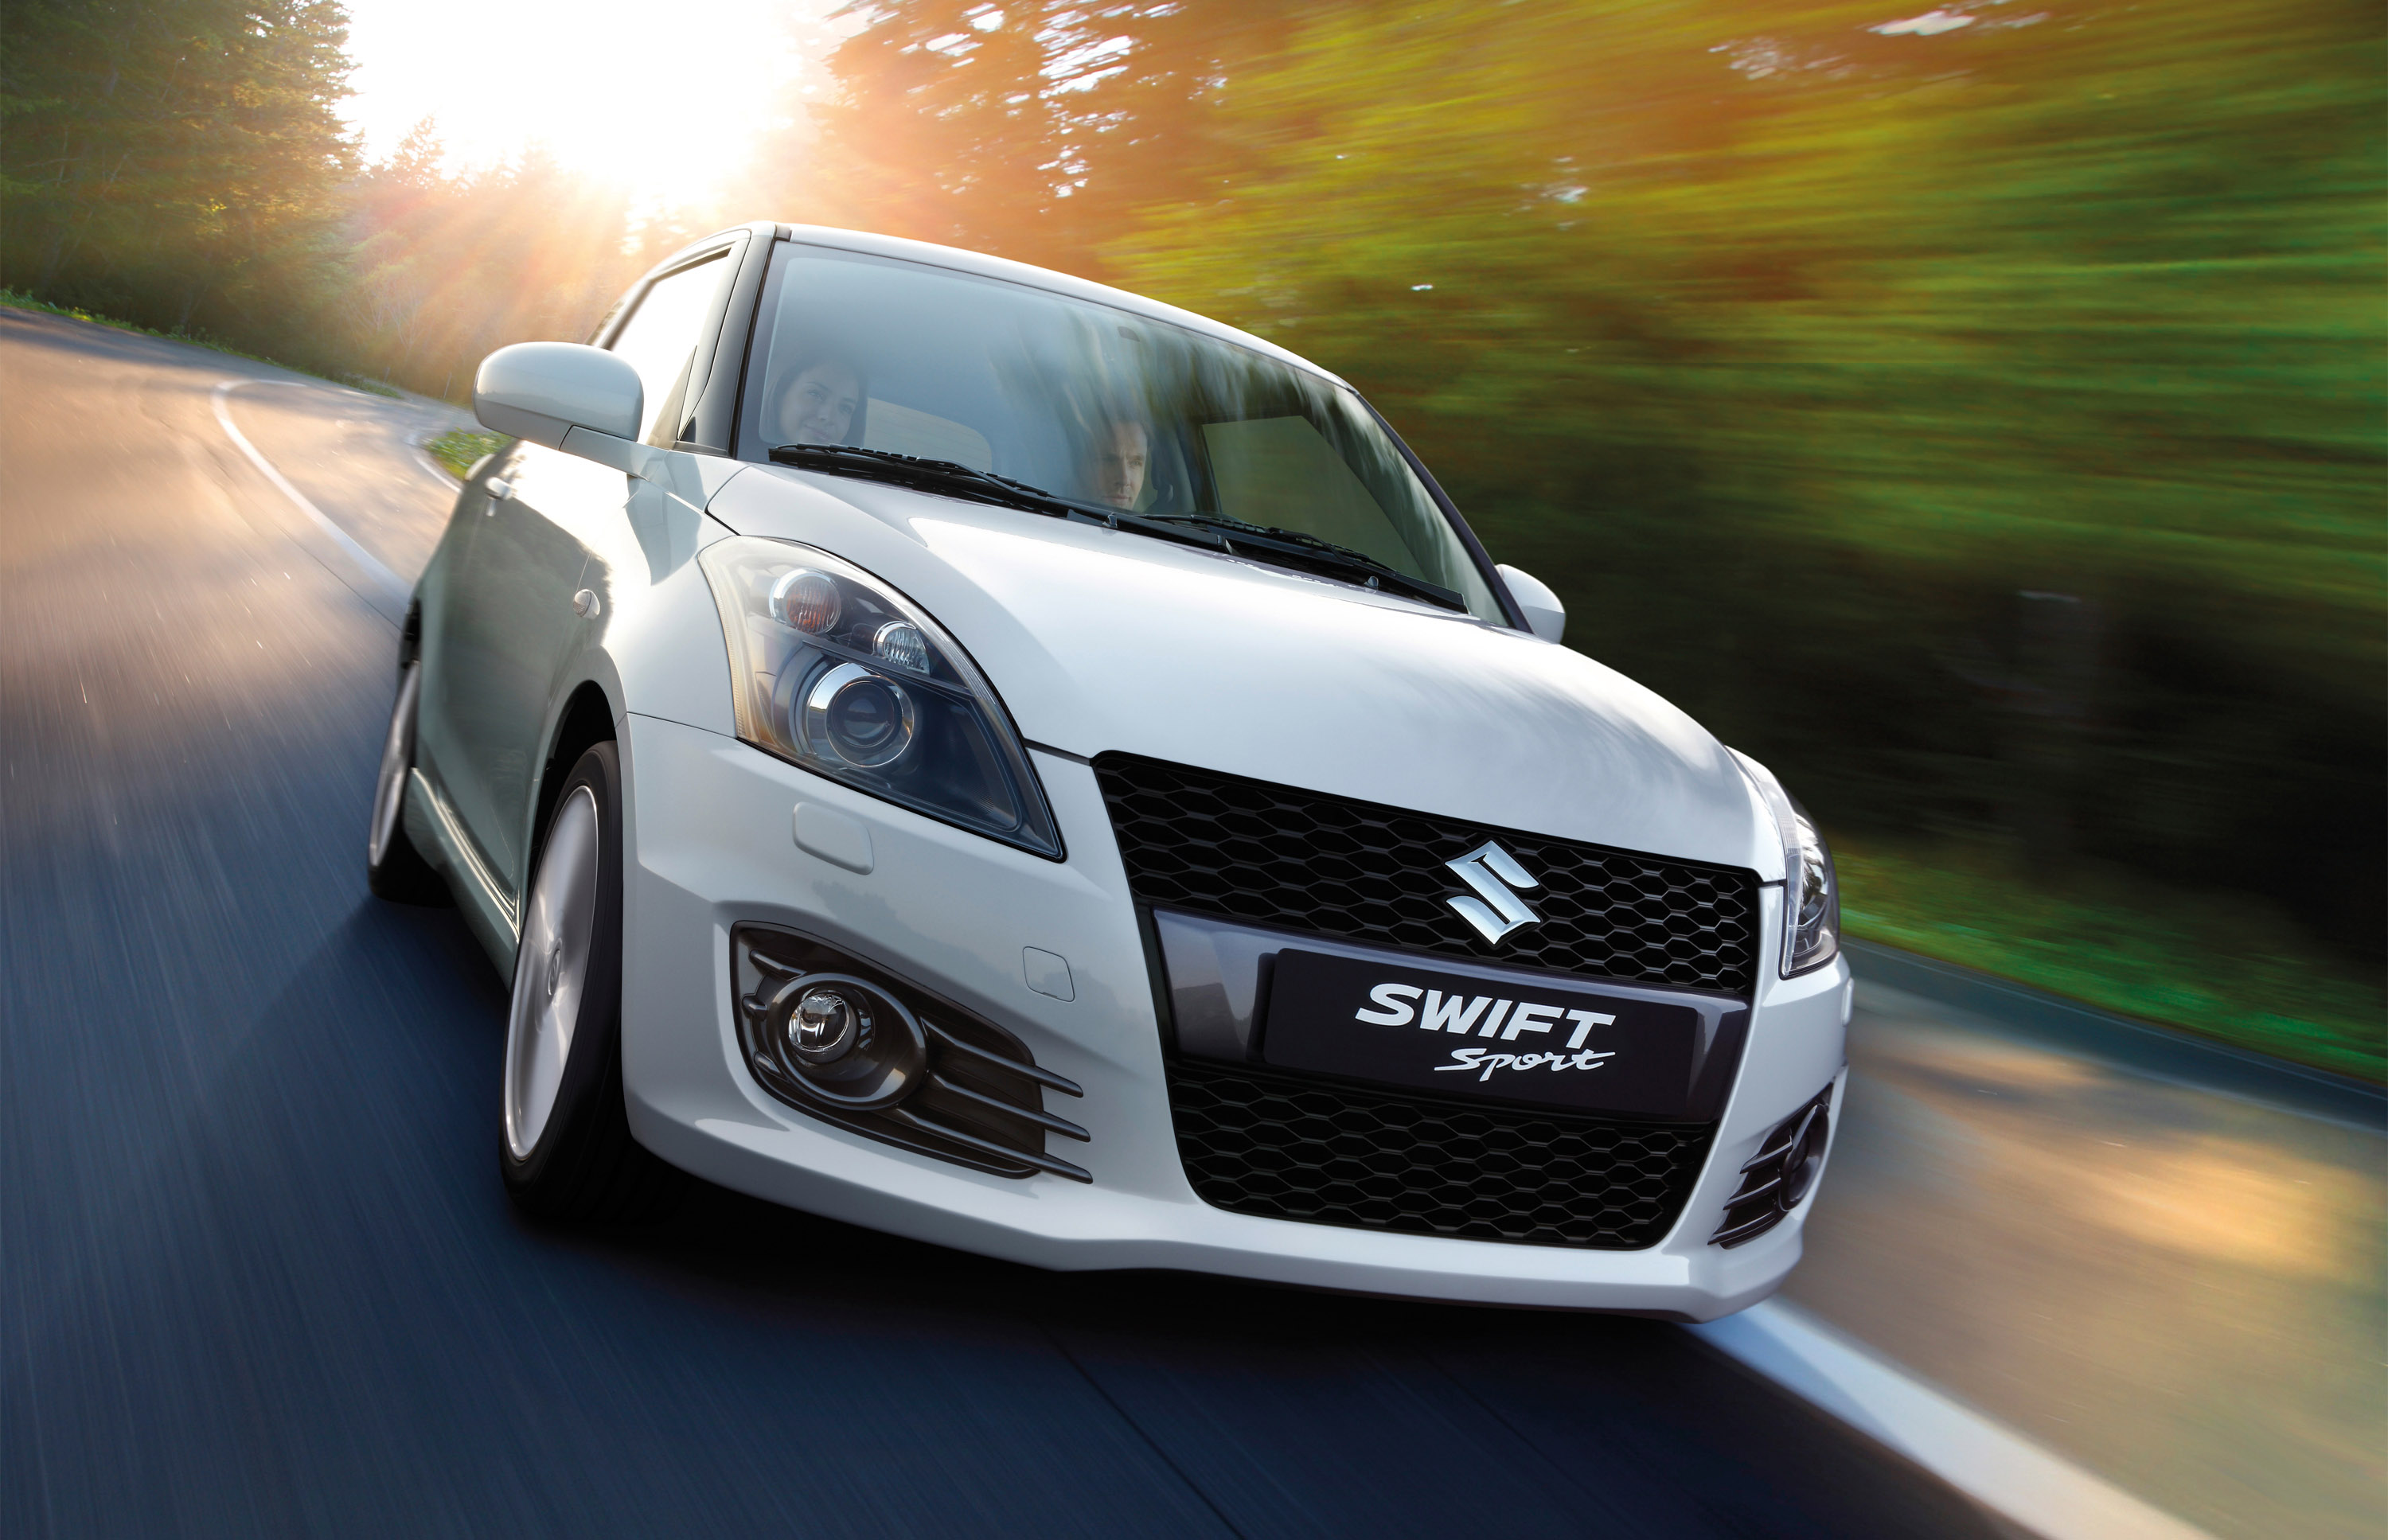 2012 Suzuki Swift Sport Picture 58227